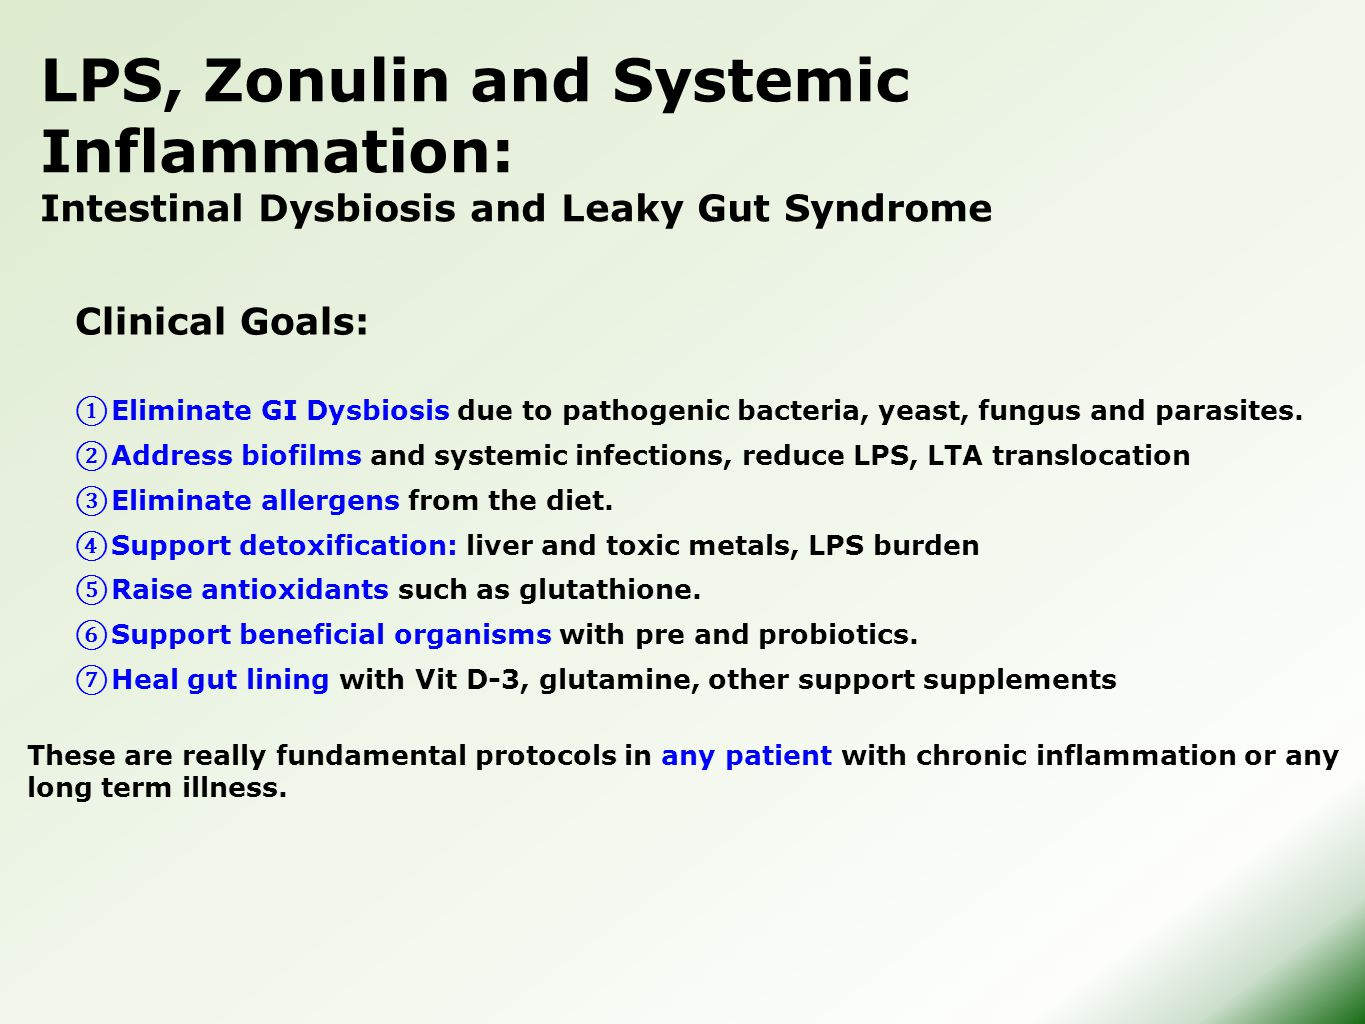 LPS, Zonulin and Systemic Inflammation: Intestinal Dysbiosis and Leaky Gut Syndrome Clinical Goals: ① Eliminate GI Dysbiosis due to pathogenic bacteria, yeast, fungus and parasites.